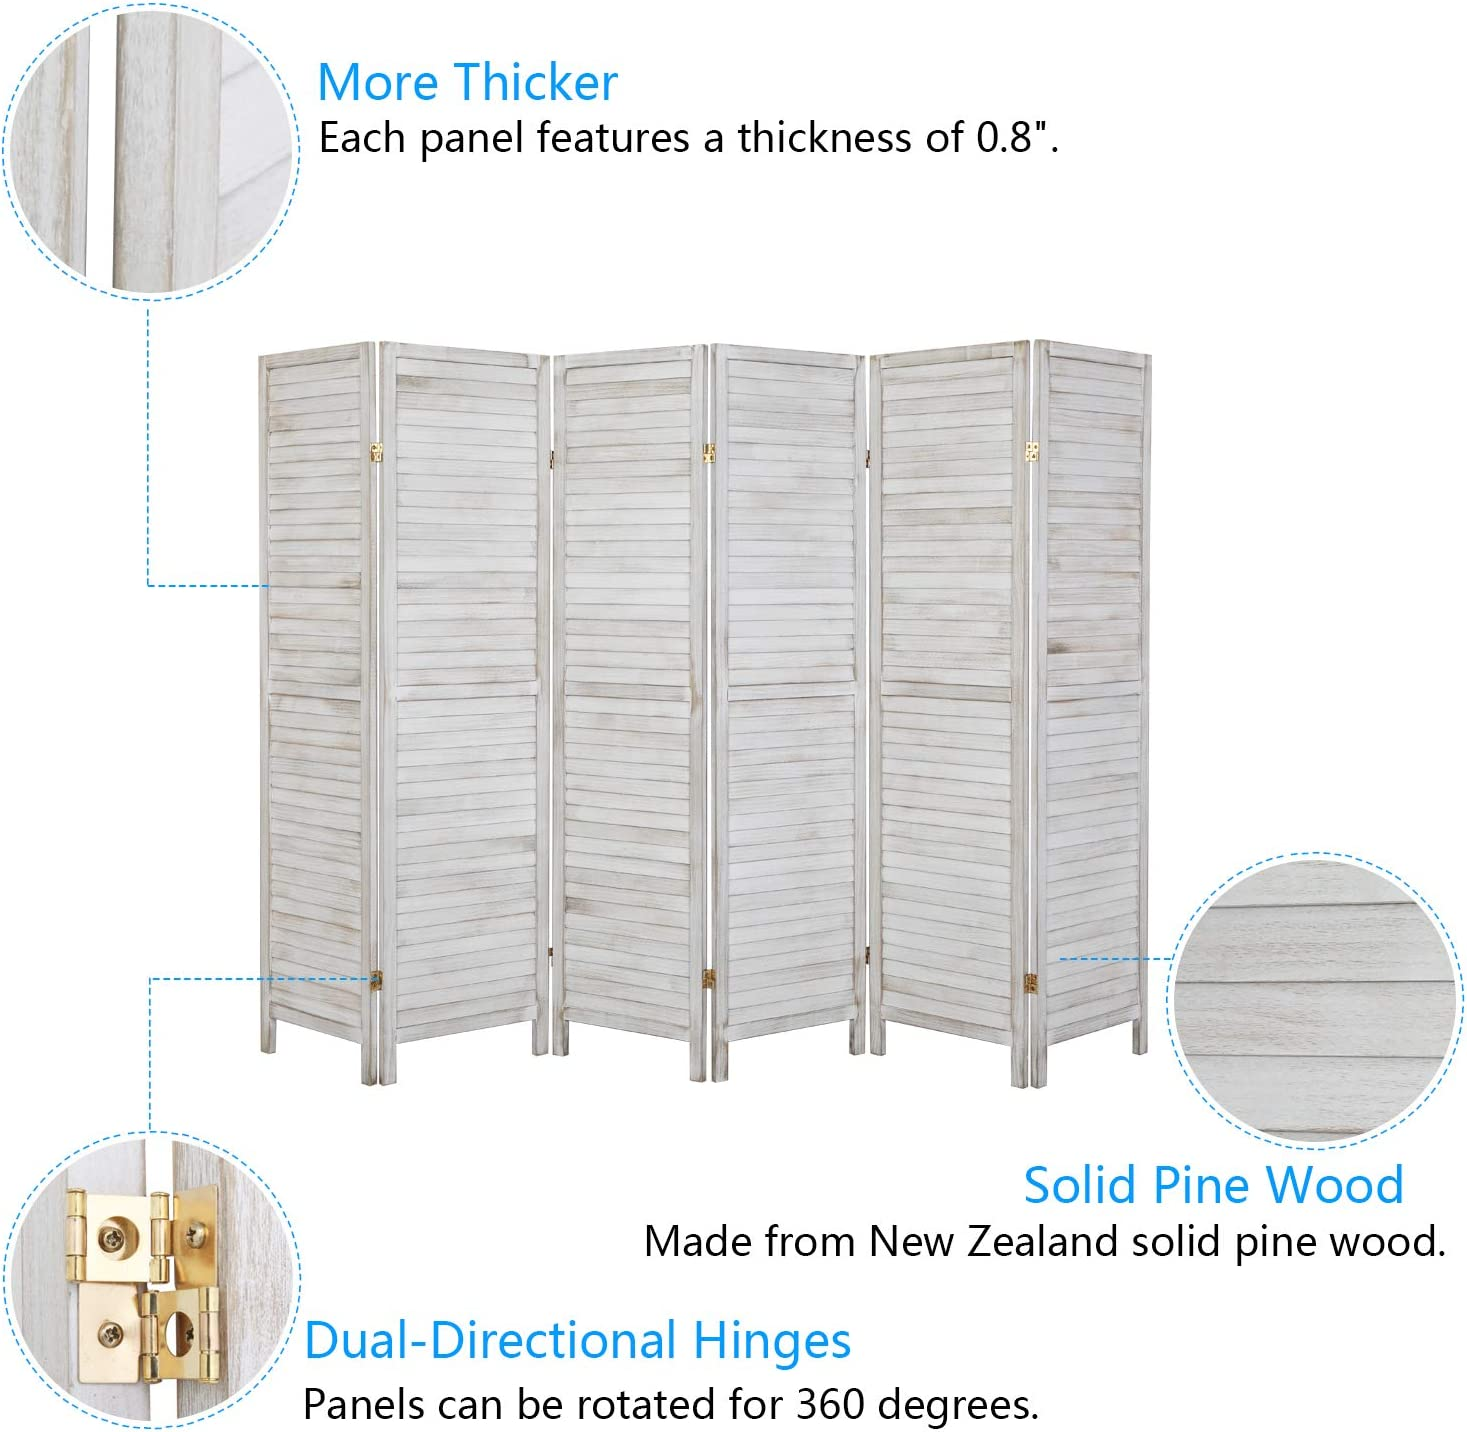 Greyish White, 4 Panel 6FT Tall Indoor Room Dividers and Folding Privacy Screens for Home Office Bonnlo Upgraded Heavy Duty Folding Pine Wood Room Divider Screens Restaurant Bedroom